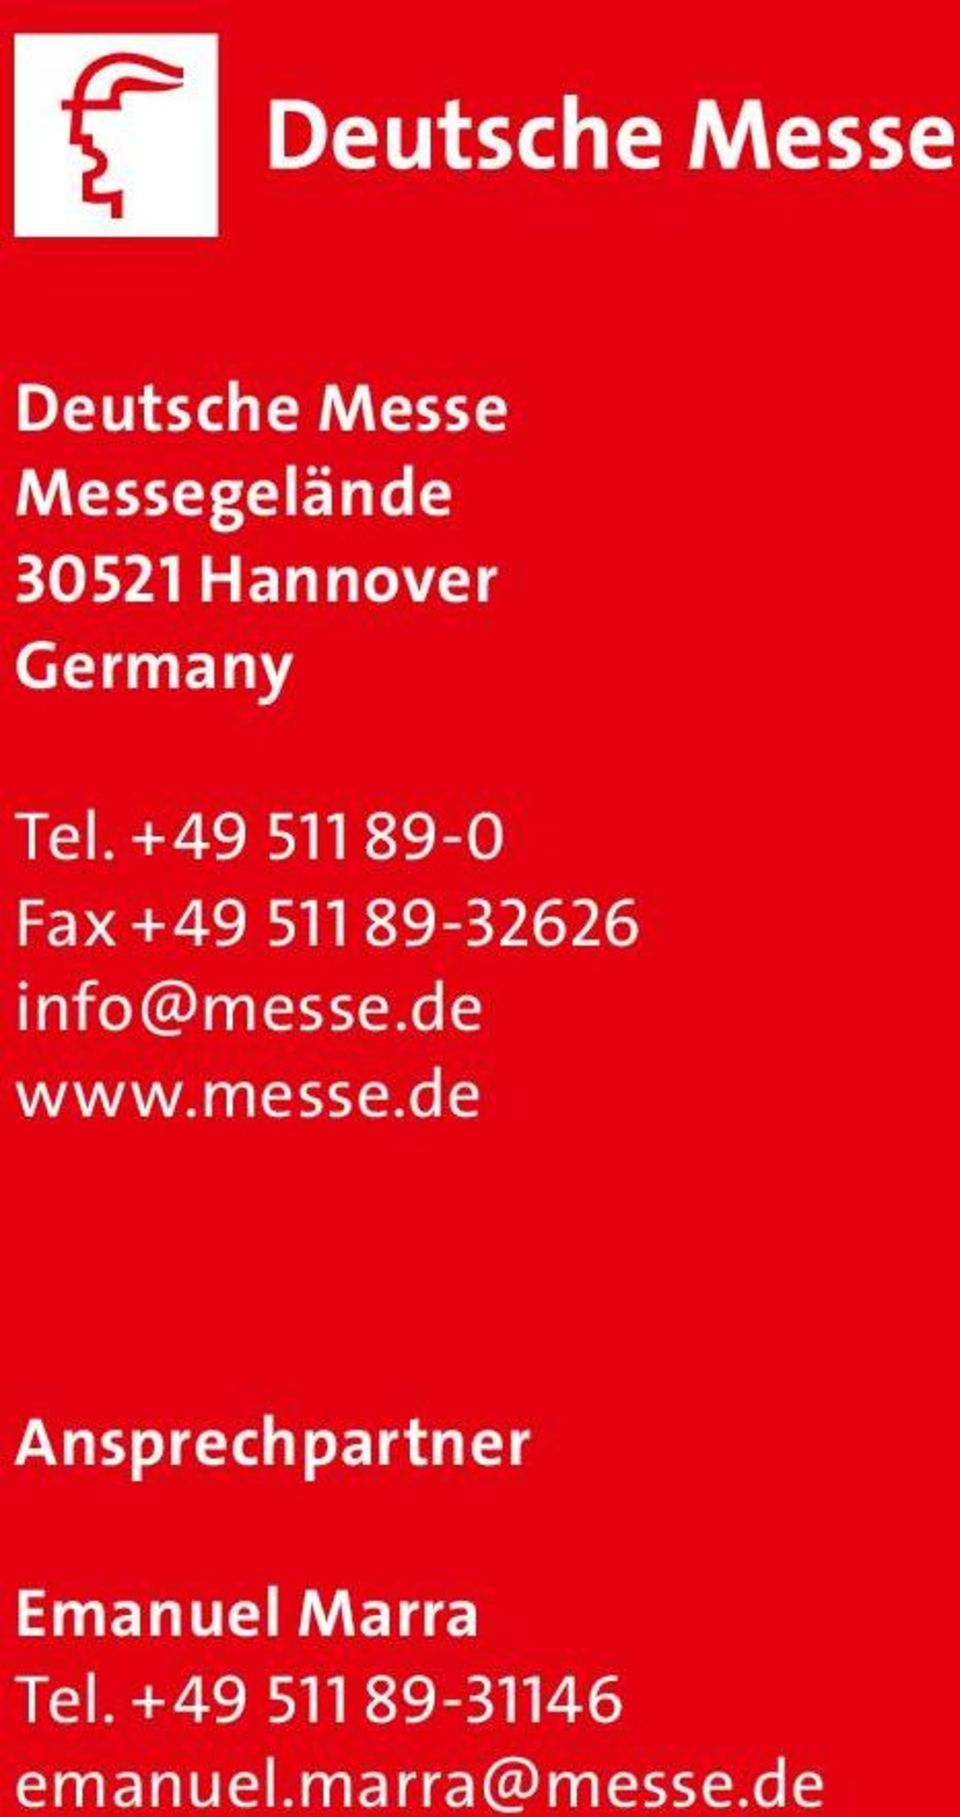 +49 511 89-0 Fax +49 511 89-32626 info@messe.